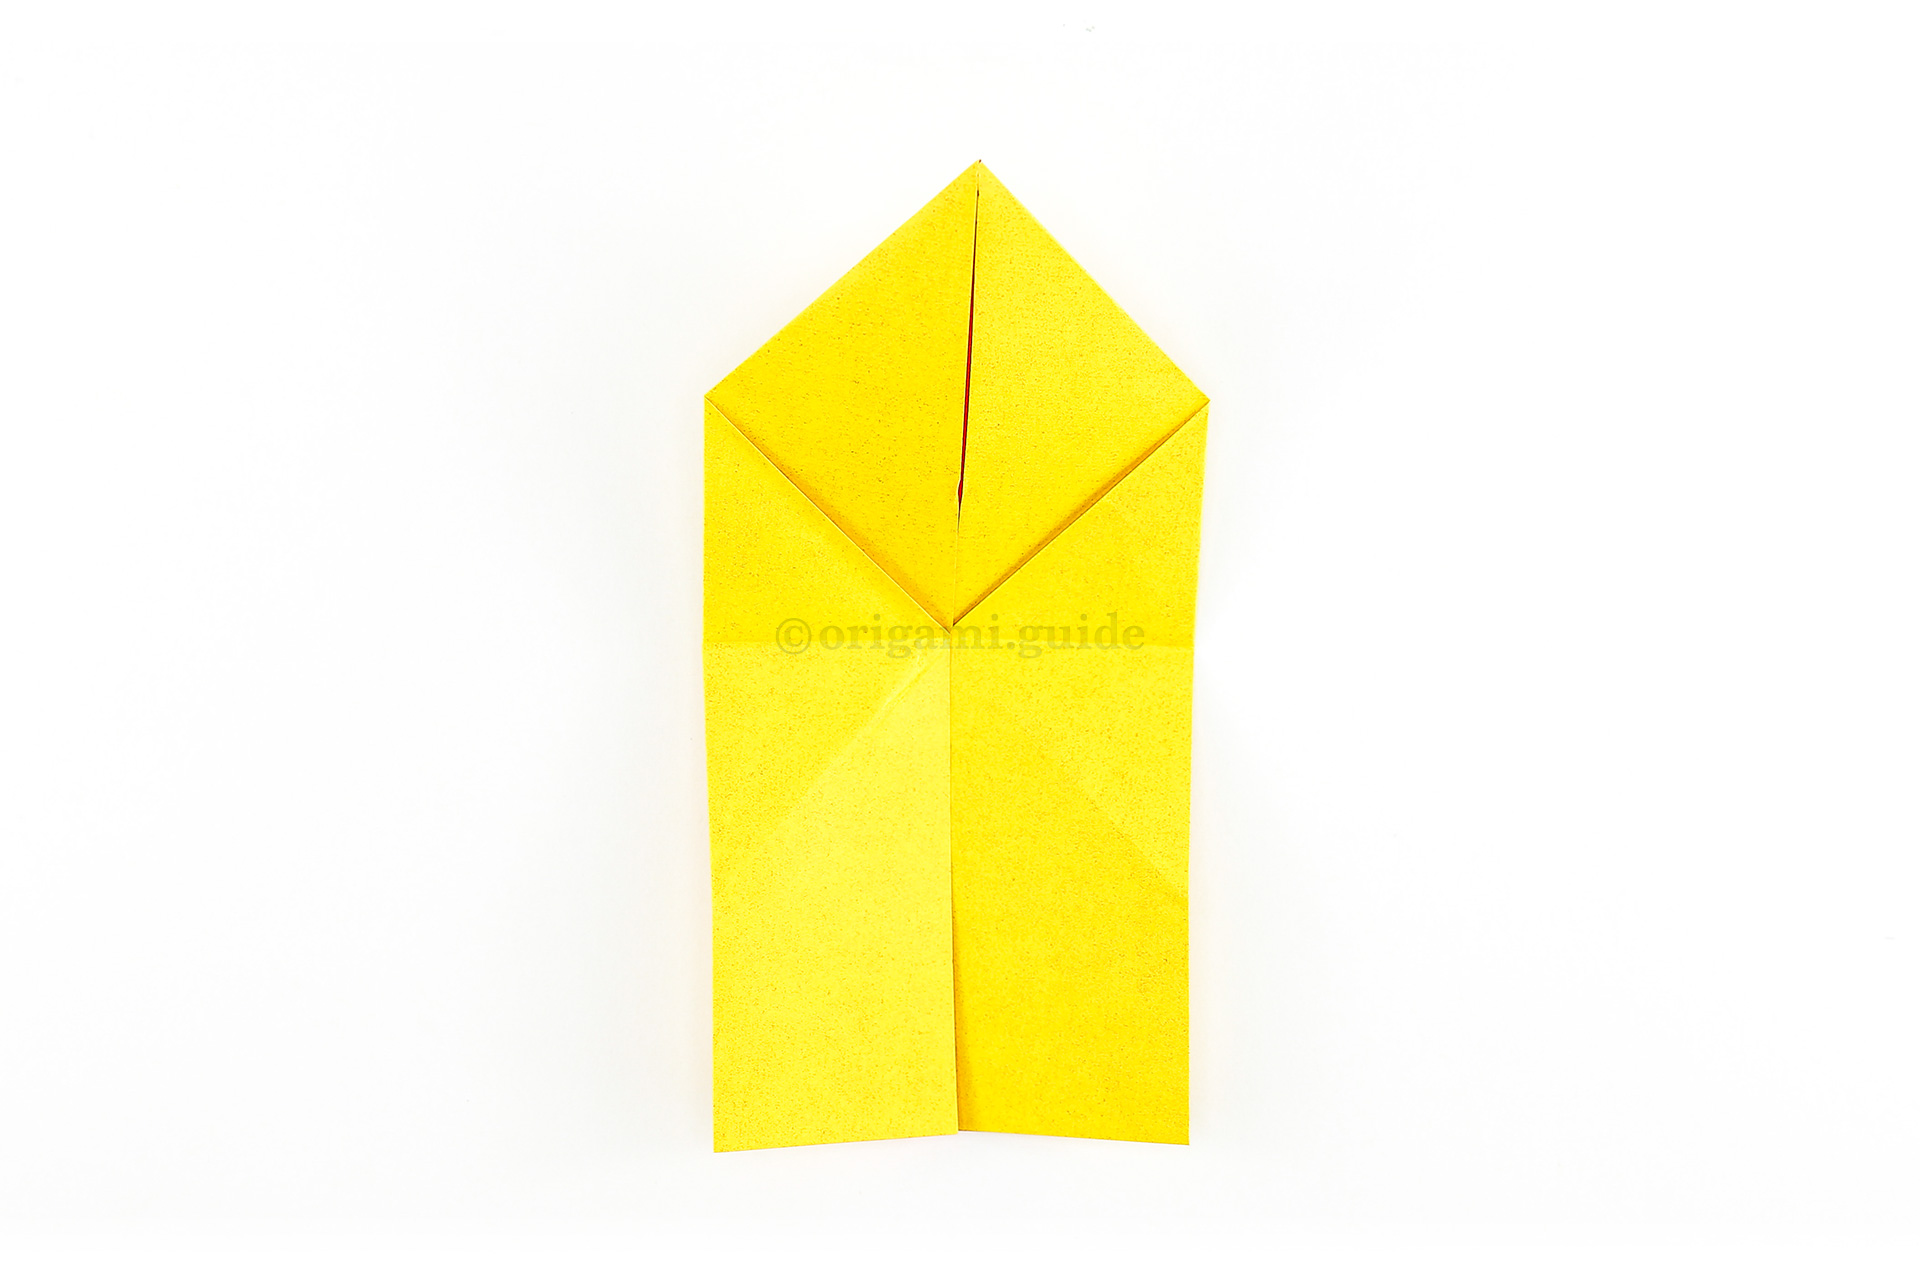 How to make a traditional easy origami fish: page 1 | 1280x1920